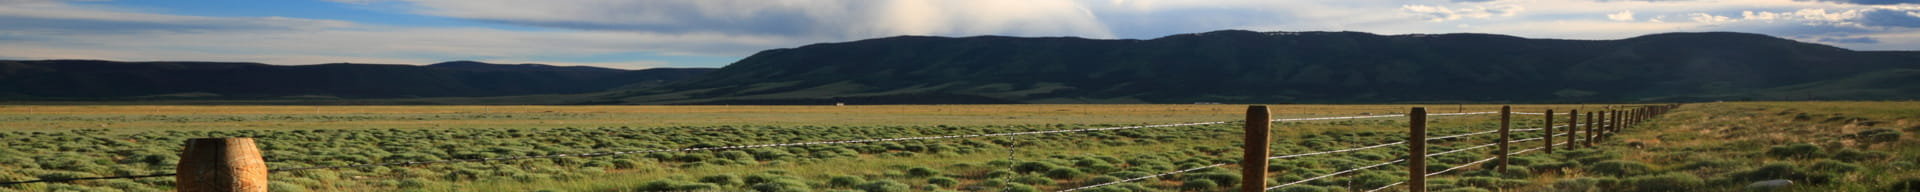 fencing-along-a-Colorado-field